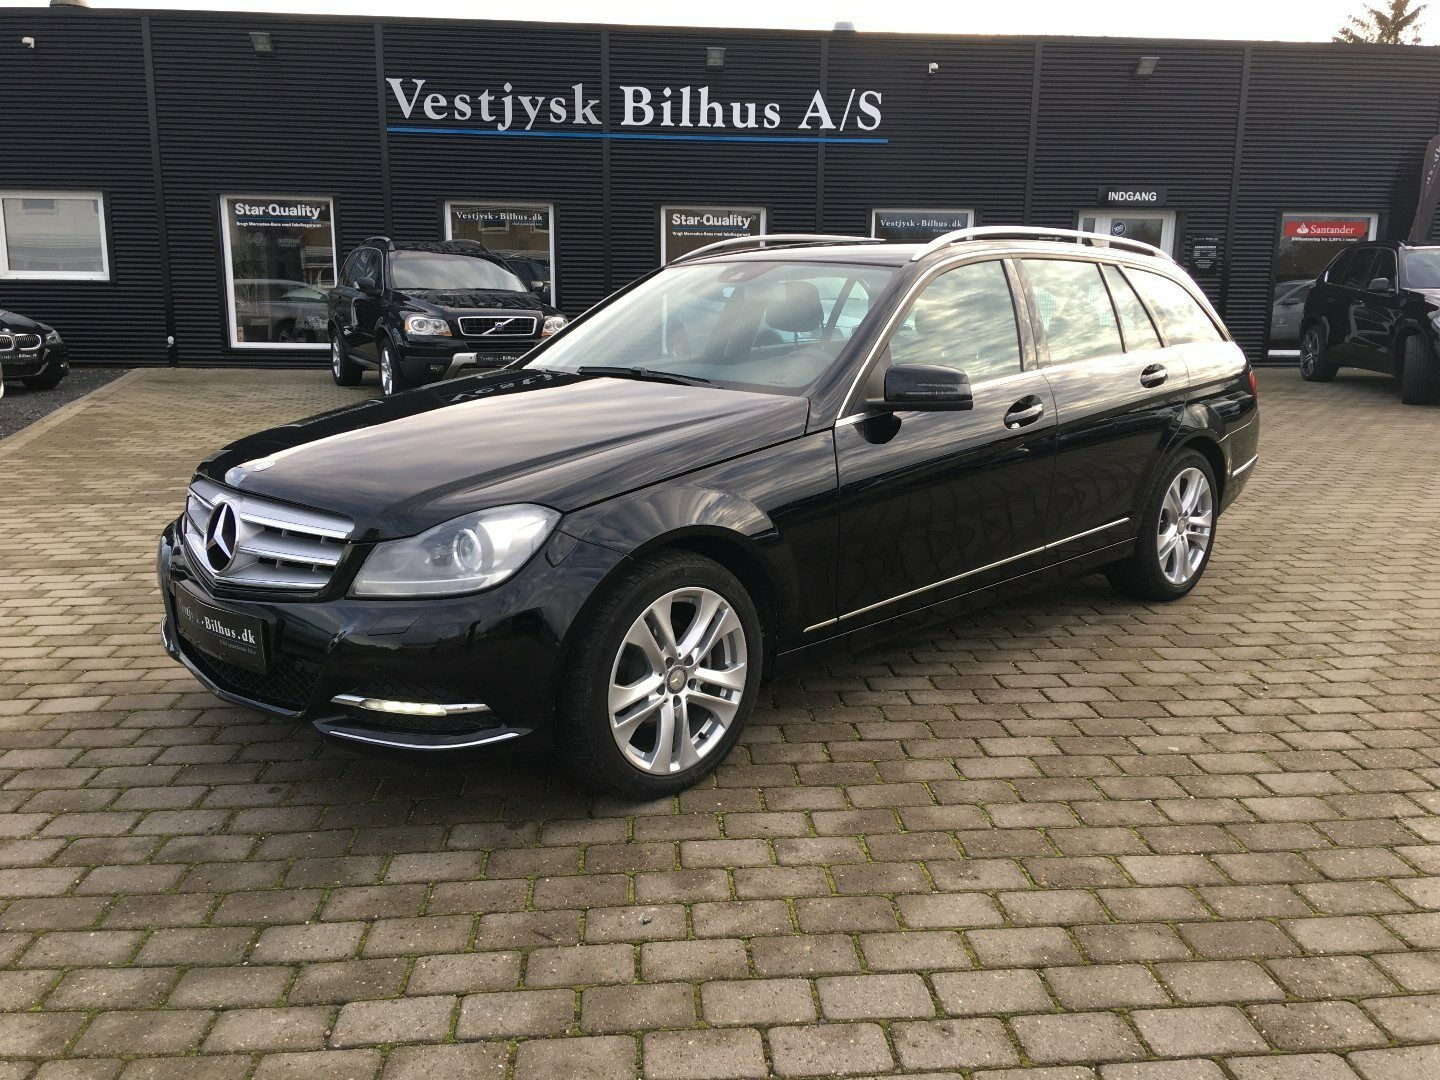 Mercedes C200 2,2 CDi Avantgarde stc. BE 5d - 239.900 kr.